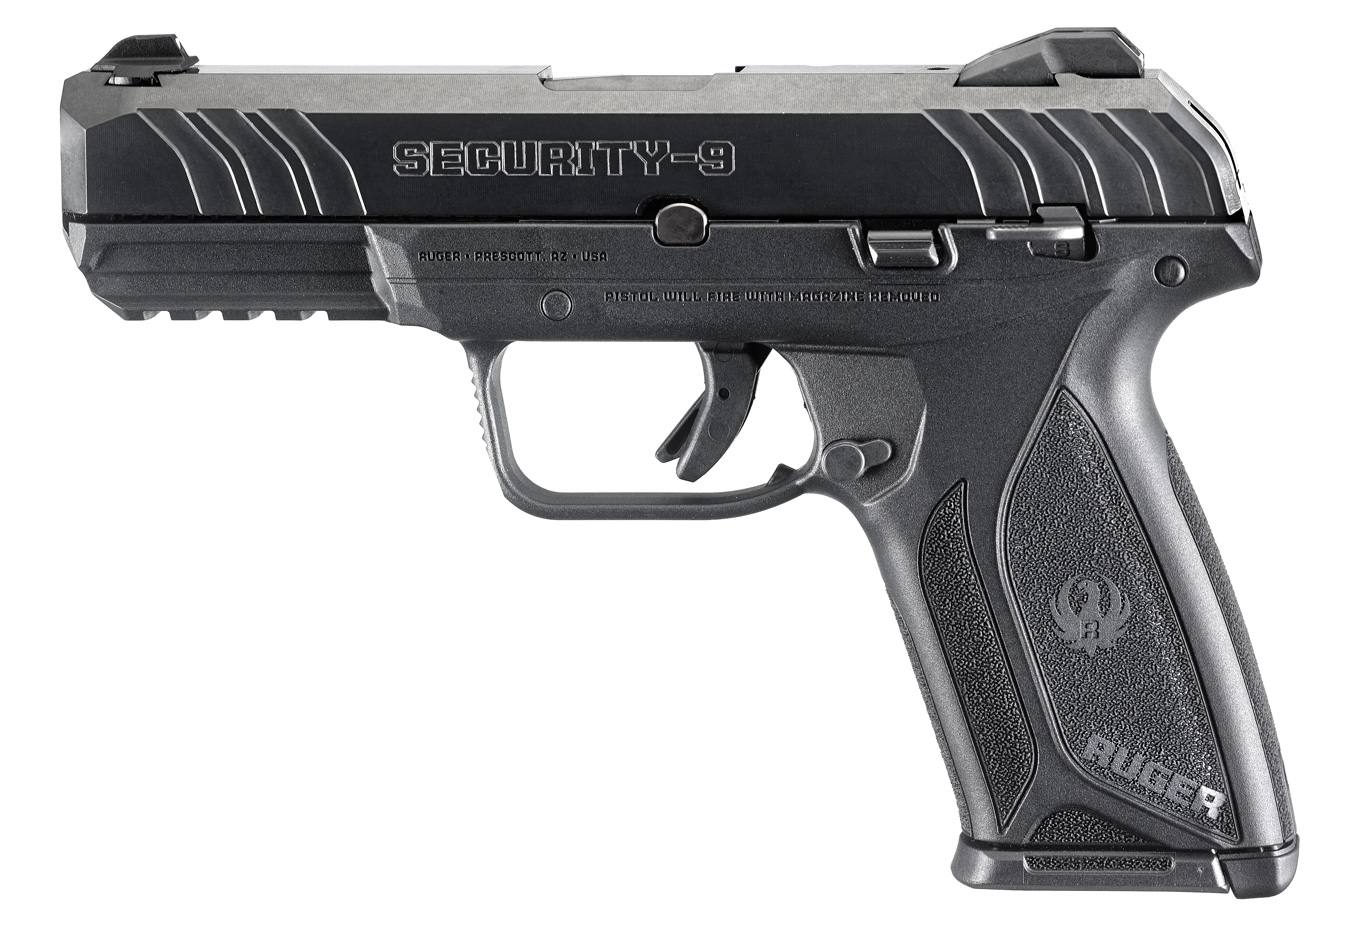 """<BODY><P STYLE=""""FONT-FAMILY:ARIAL;""""><P ALIGN=""""LEFT""""> Caliber-Gauge9MM LUGER</BR> Finish: Blue</BR> Barrel Length:4</BR> Capacity:10</BR> Features:Drift Adjustable 3-Dot Sights</BR> Includes: two alloy steel magazines</BR> Precision machined</BR>  Hard coated aluminum chassis</BR> Full-length guide rails <H1 STYLE=""""COLOR:GREEN"""">$379.95</H1></P></BODY></HTML>"""